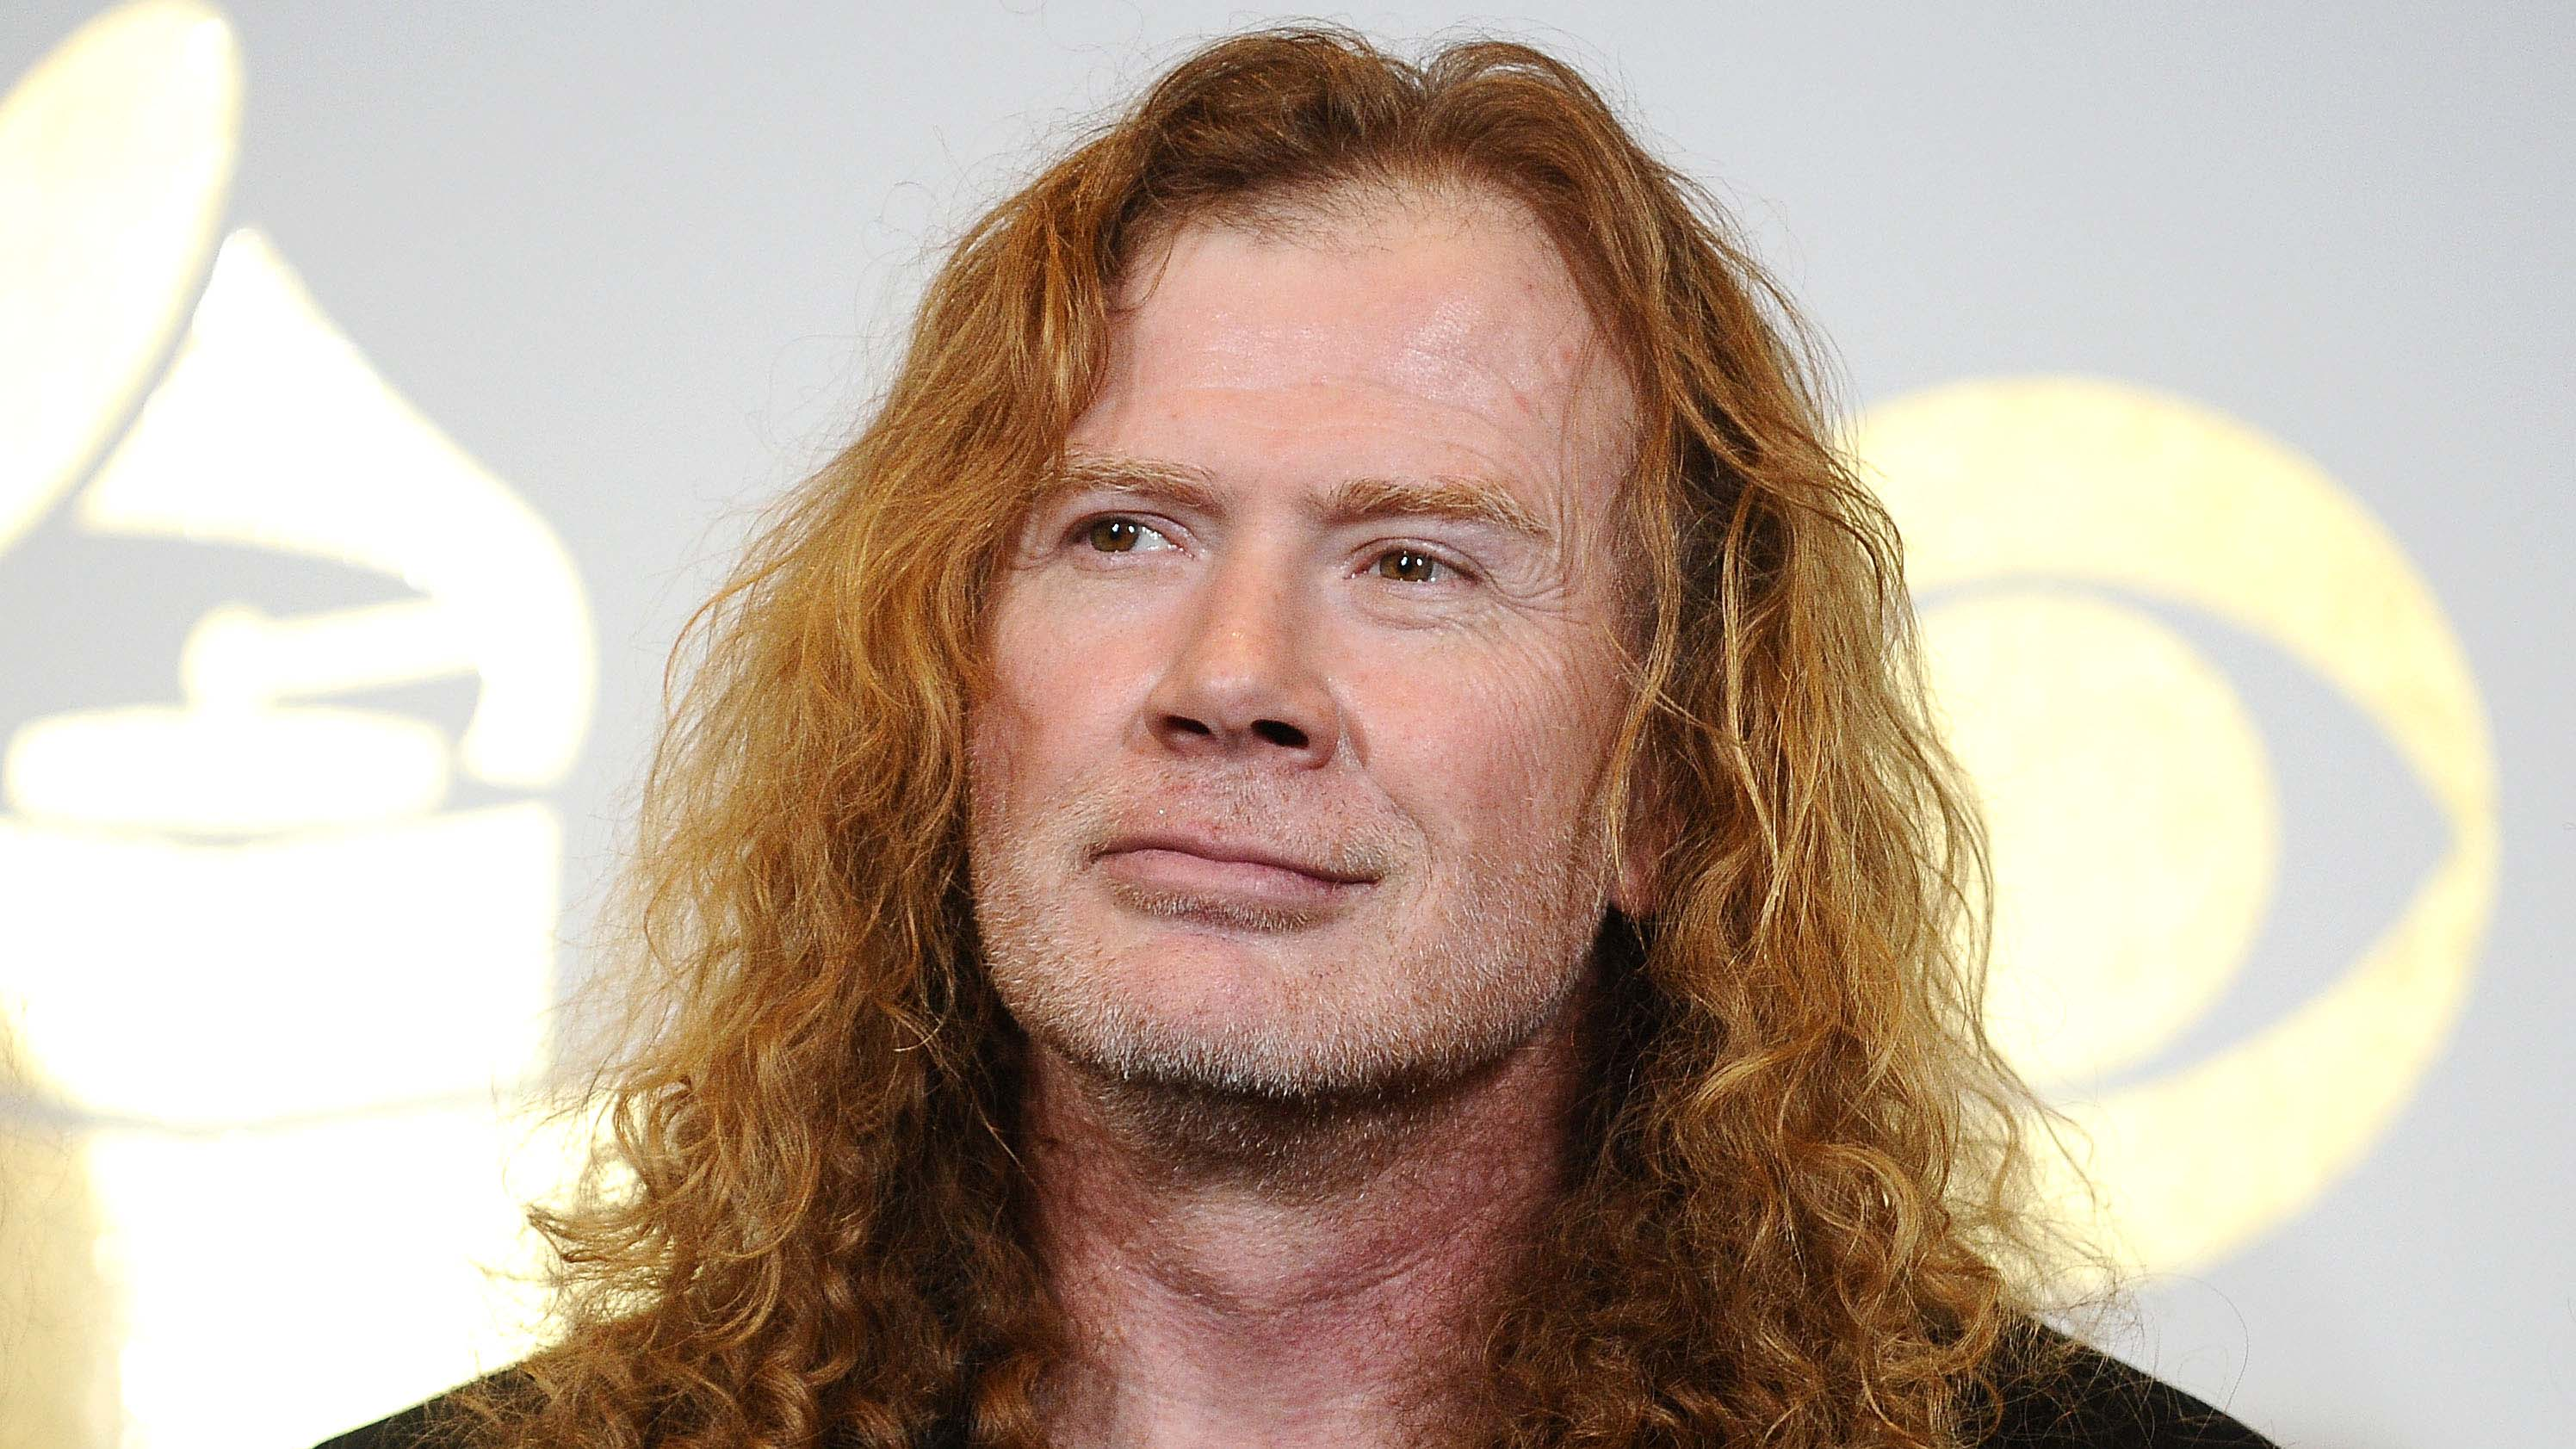 Megadeth's Dave Mustaine announces throat cancer diagnosis | MusicRadar